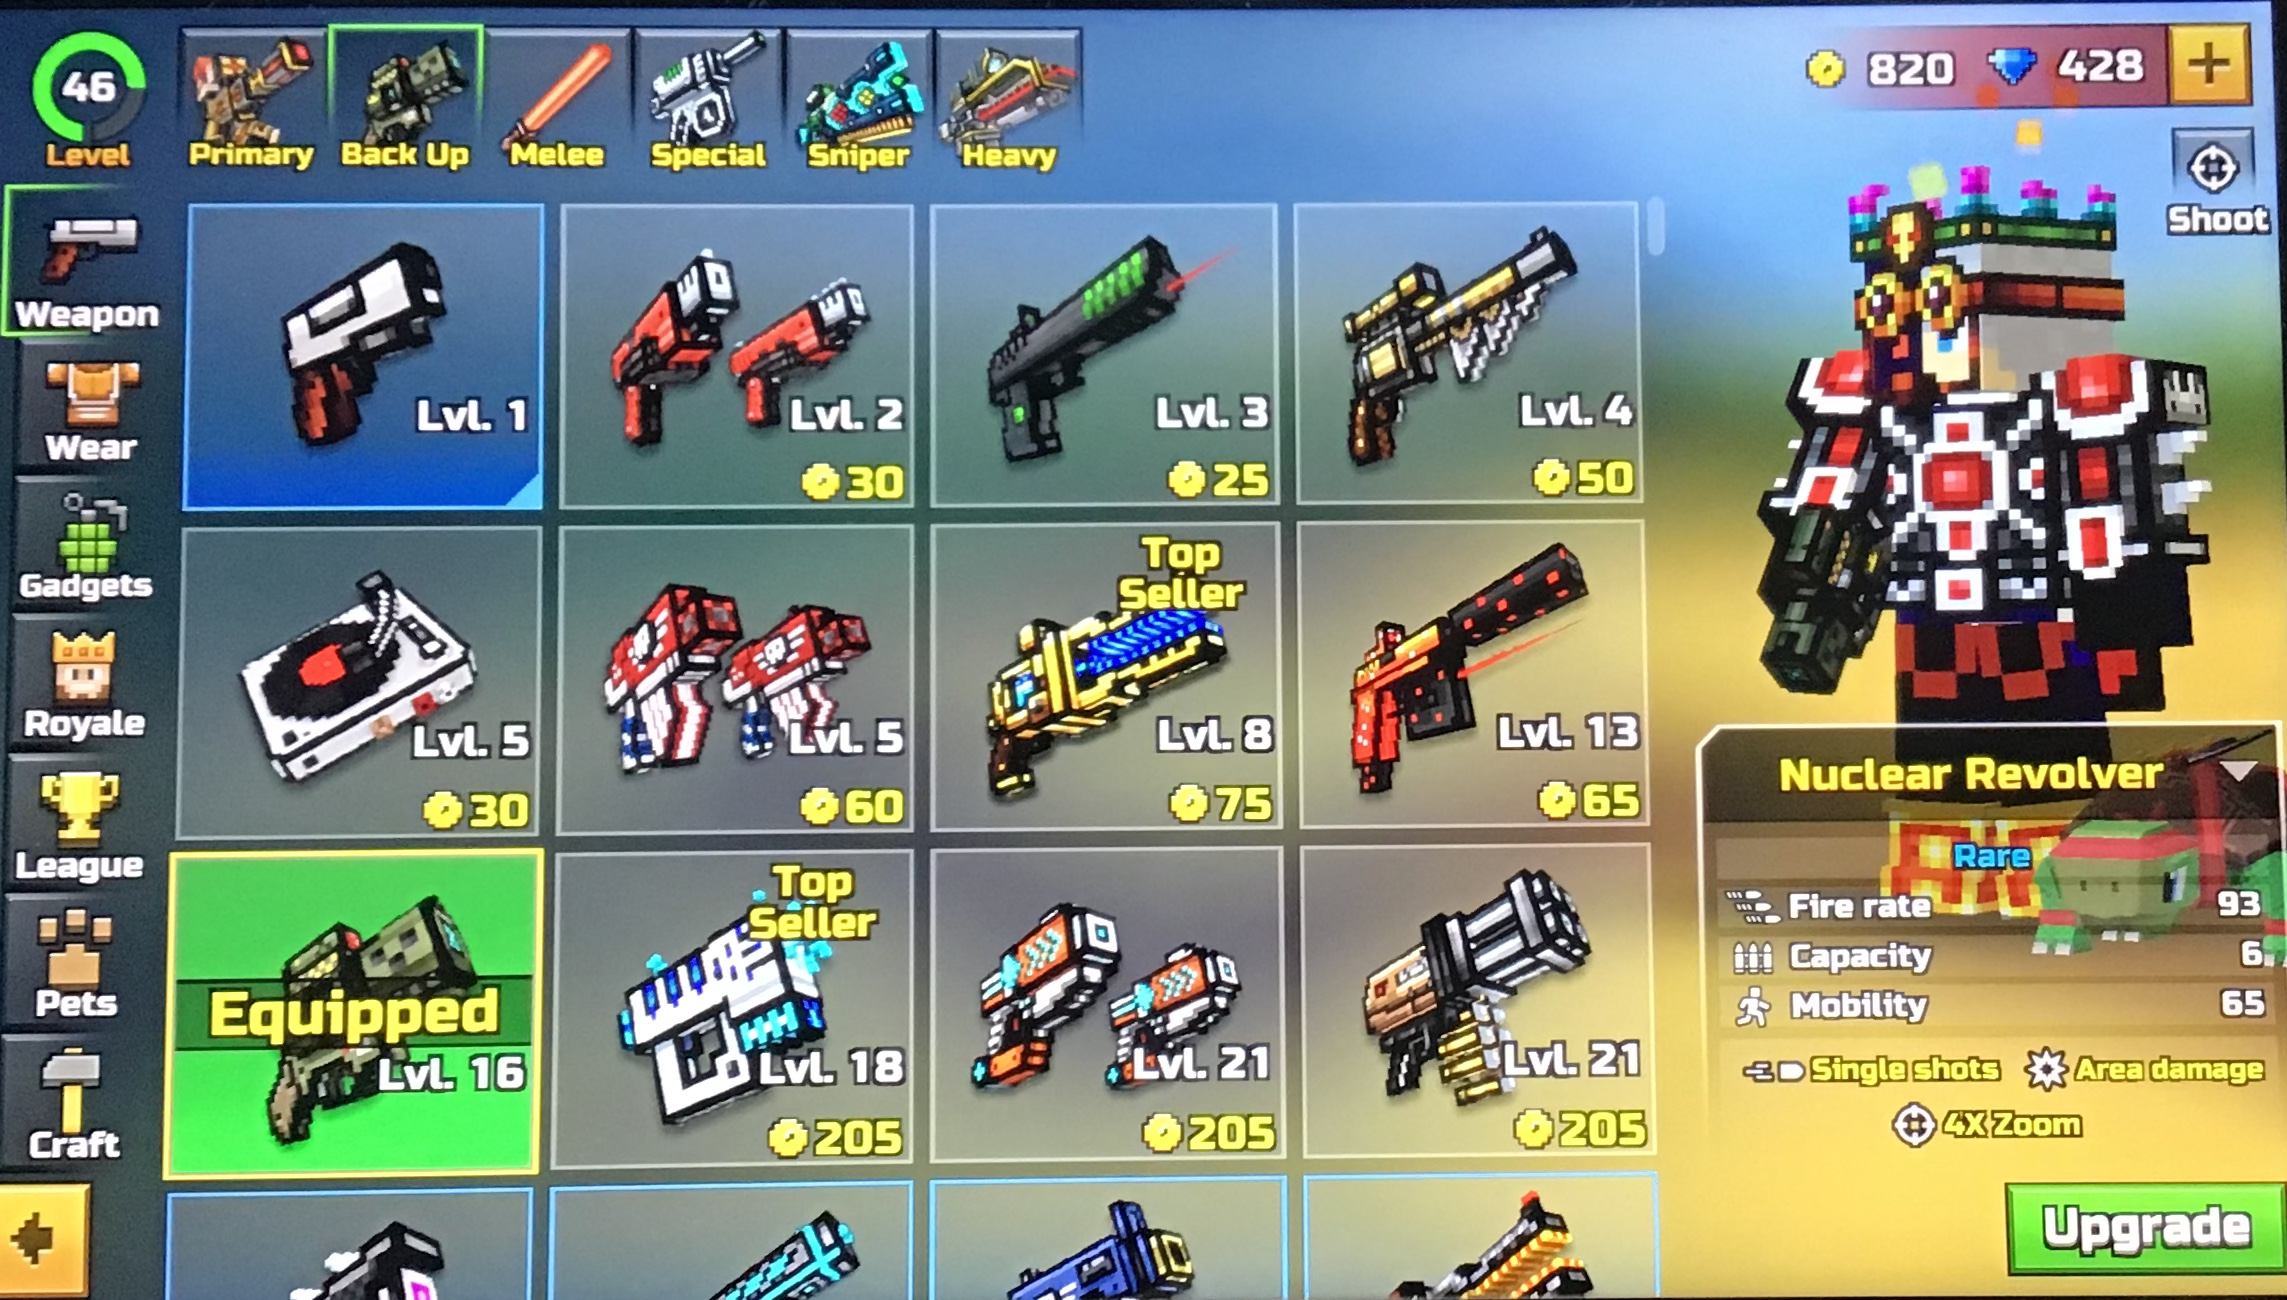 Guys tell me in comments if I have good loadout. Backup for rocket jump.